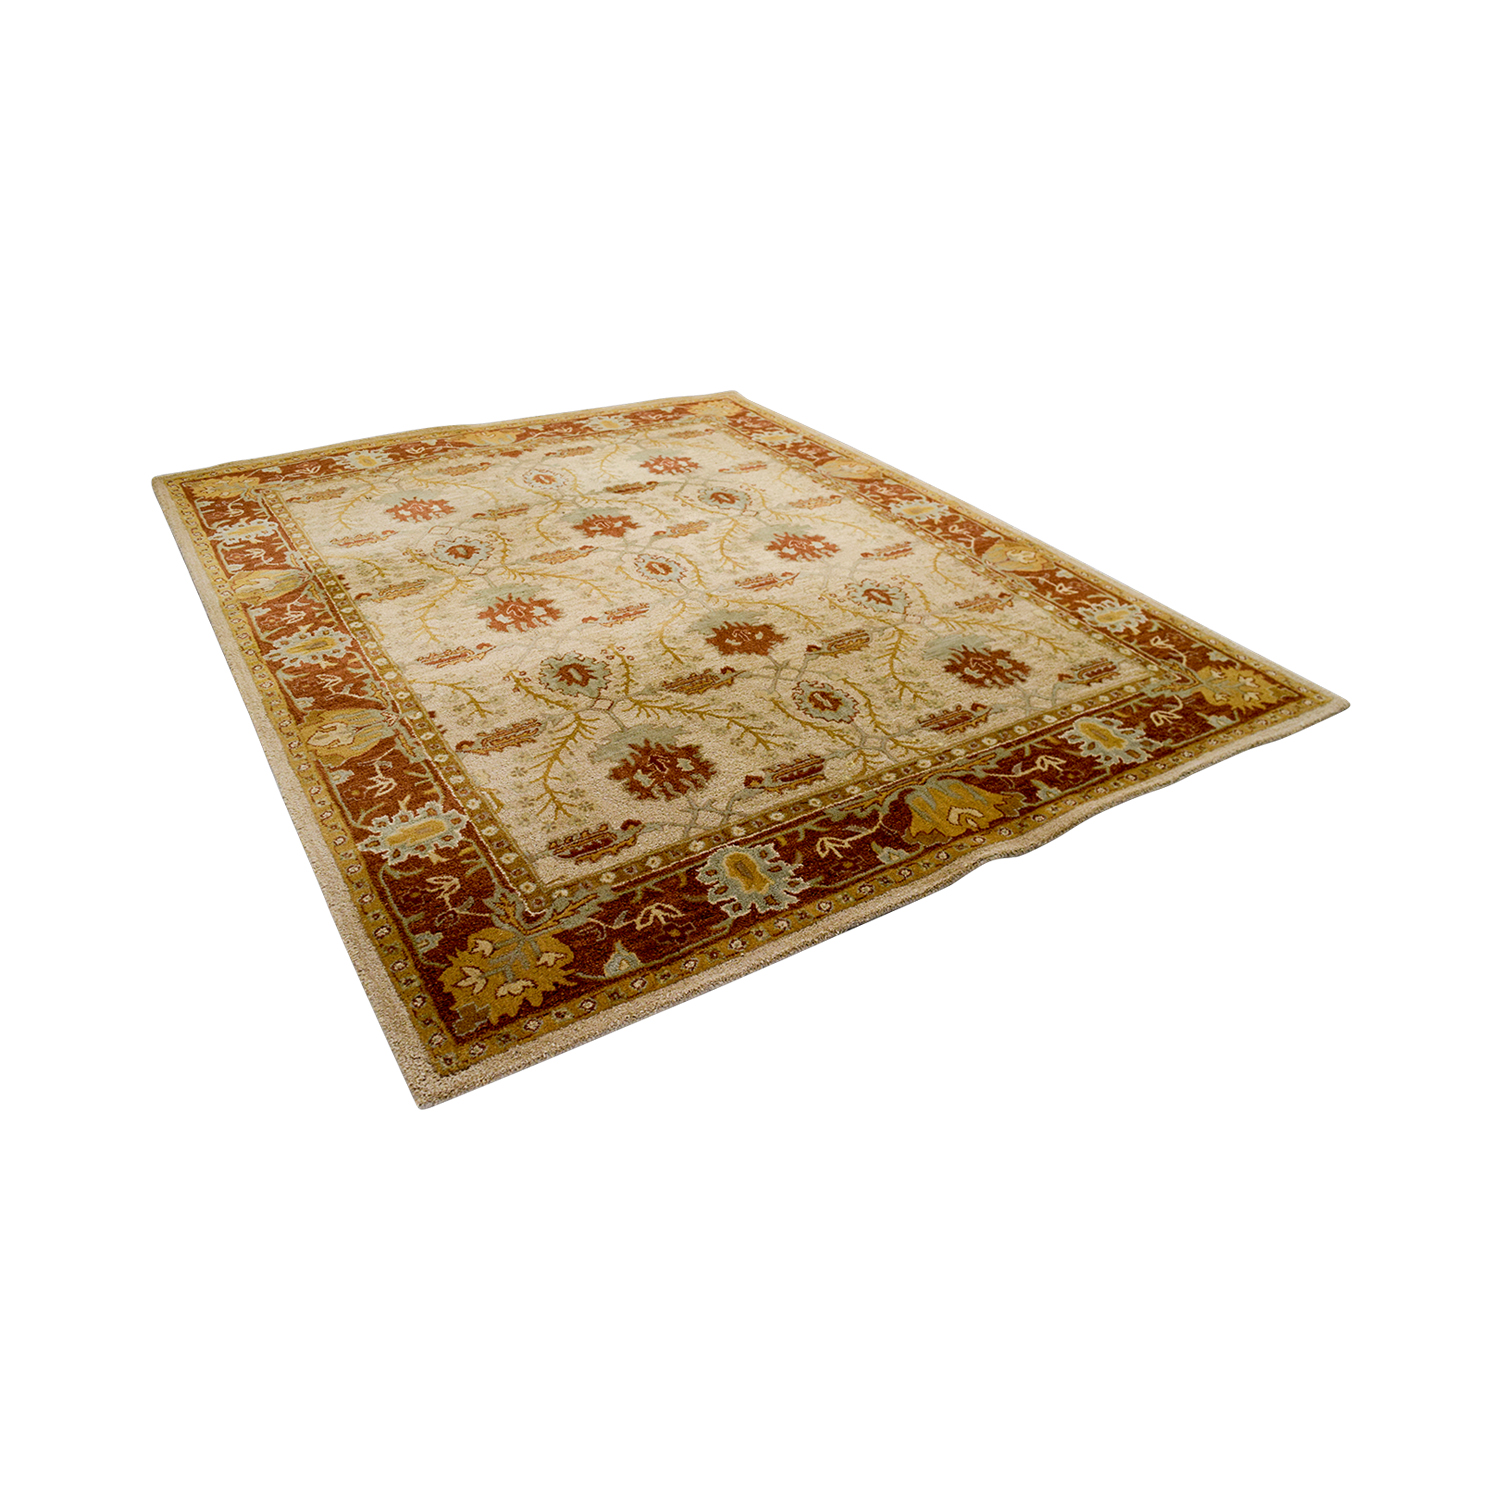 Pottery Barn Pottery Barn Tan and Red Rug second hand